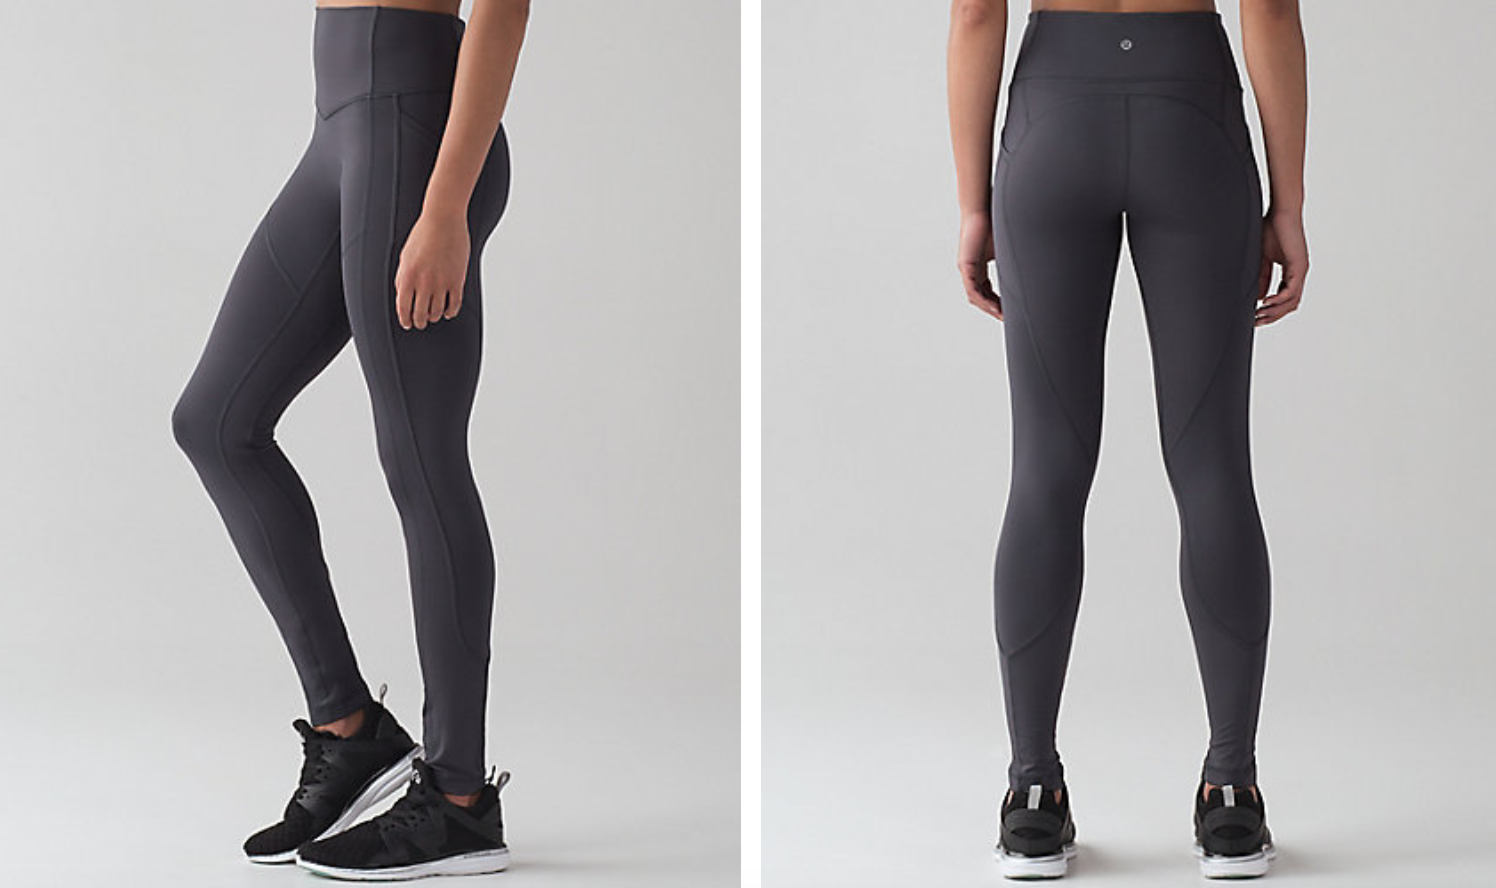 https://api.shopstyle.com/action/apiVisitRetailer?url=https%3A%2F%2Fshop.lululemon.com%2Fp%2Fwomen-pants%2FAll-The-Right-Places-Pant-II%2F_%2Fprod1560003%3Frcnt%3D24%26N%3D1z13ziiZ7z5%26cnt%3D52%26color%3DLW5LGRS_028892&site=www.shopstyle.ca&pid=uid6784-25288972-7